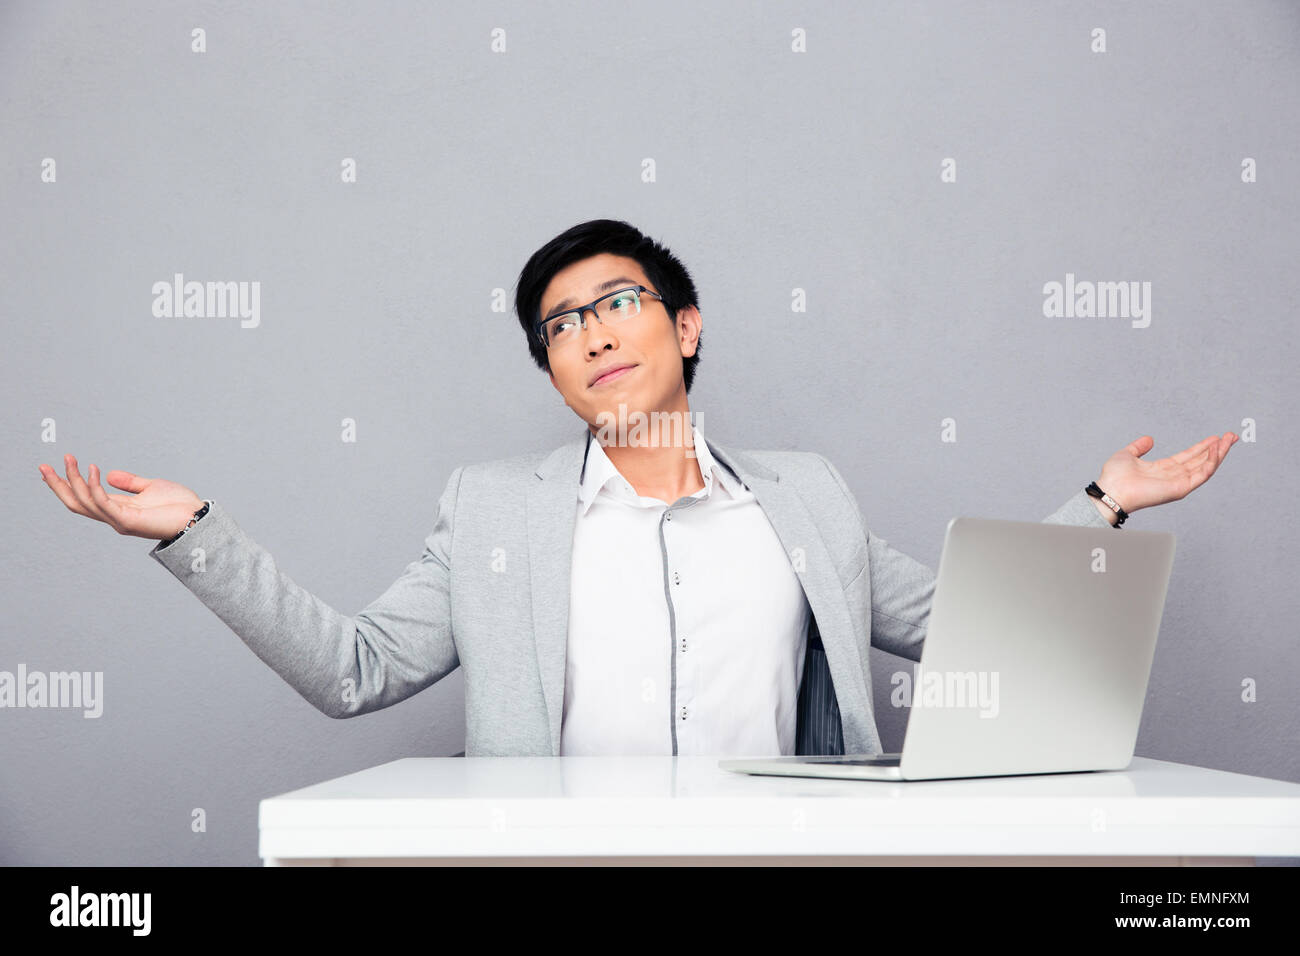 Businessman sitting at the table with laptop and shrugging over gray background - Stock Image